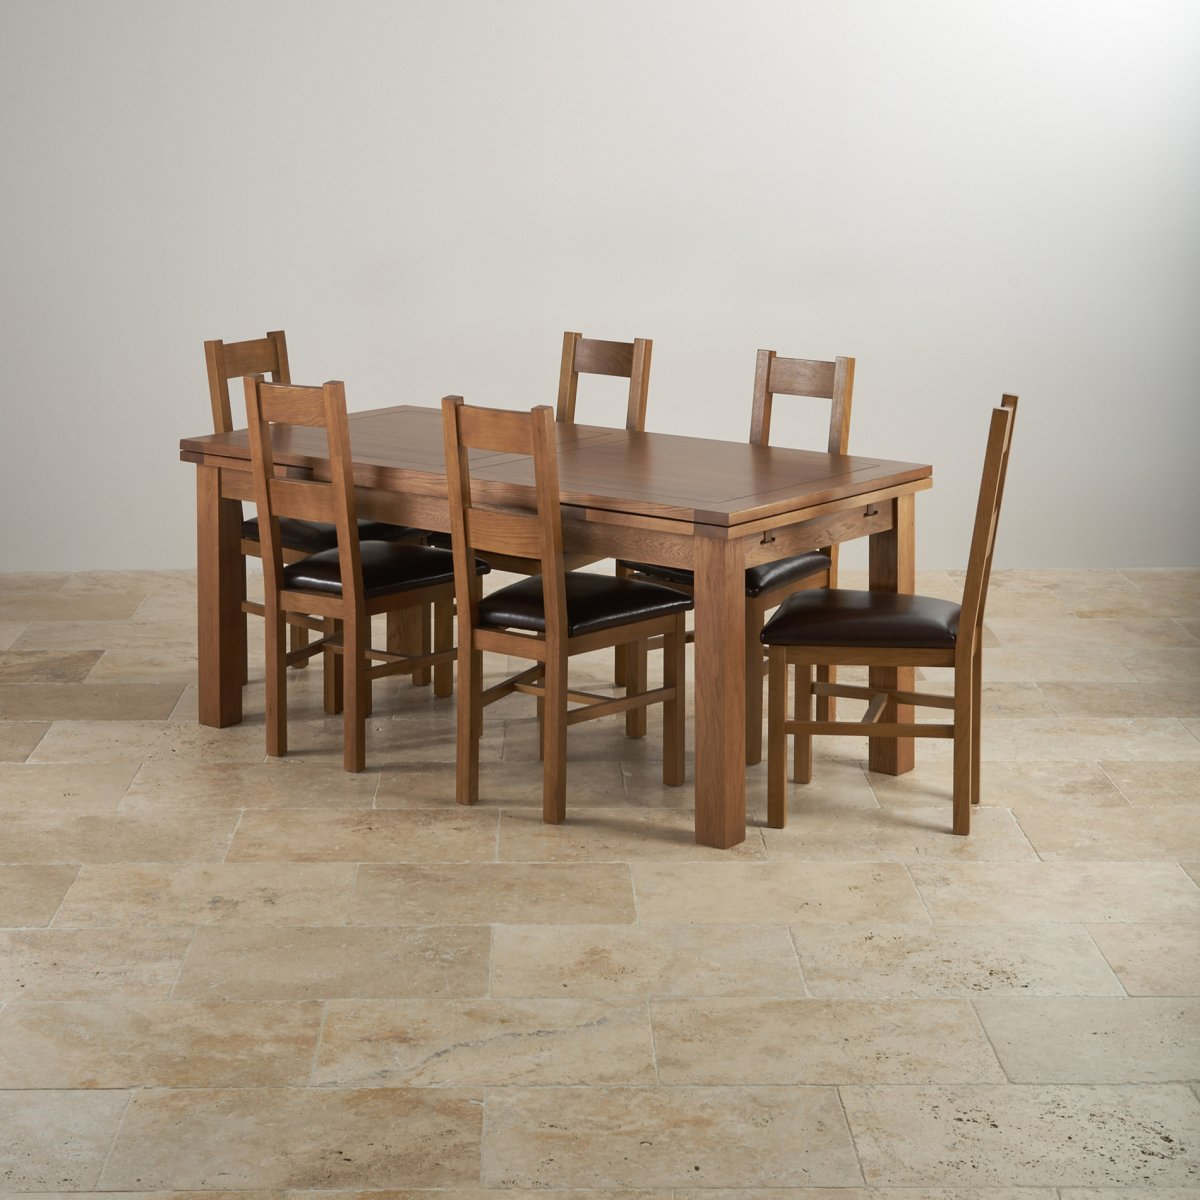 Oak Dining Room Furniture: 6ft Table With 6 Chairs